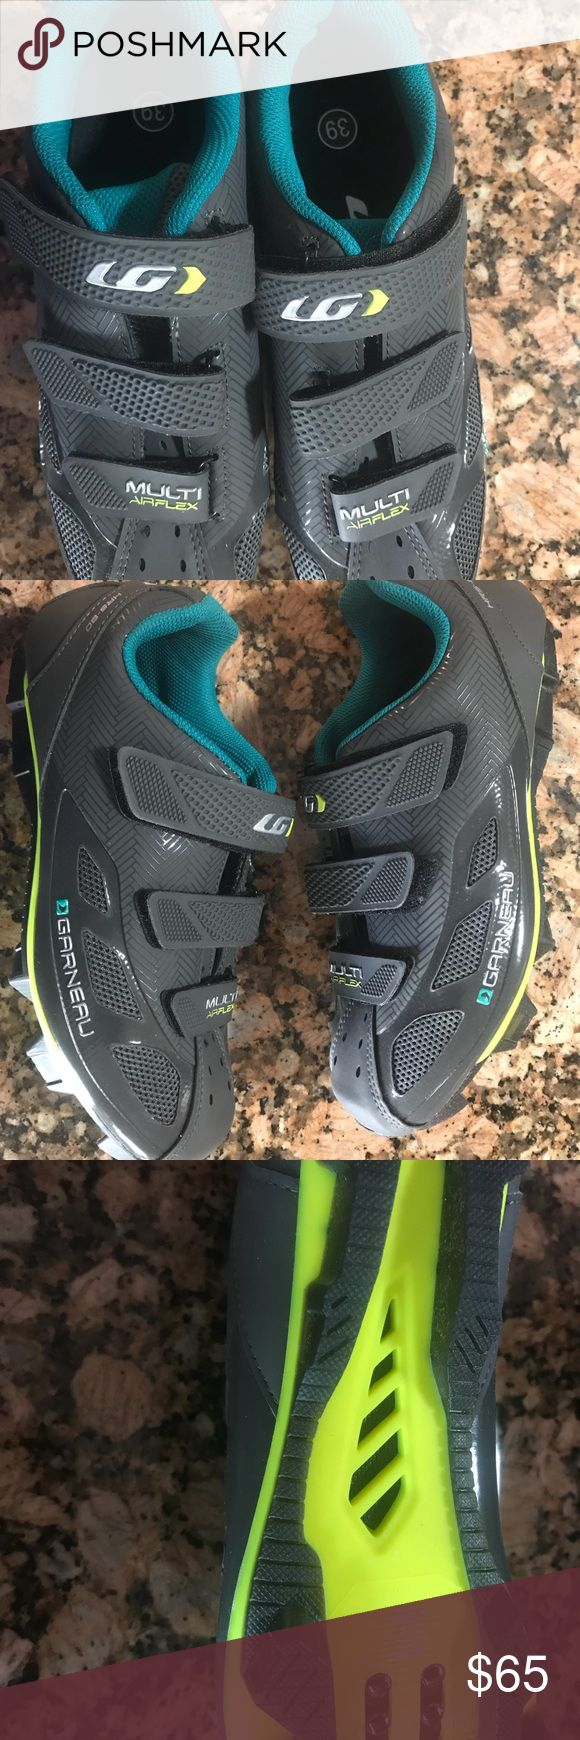 Louis Garneau Women Cycling Shoes Worn only once for an indoor class, shows a little wear on bottom due to removal of cleat. Other than that they are in perfect condition. Louis Garneau Shoes Sneakers